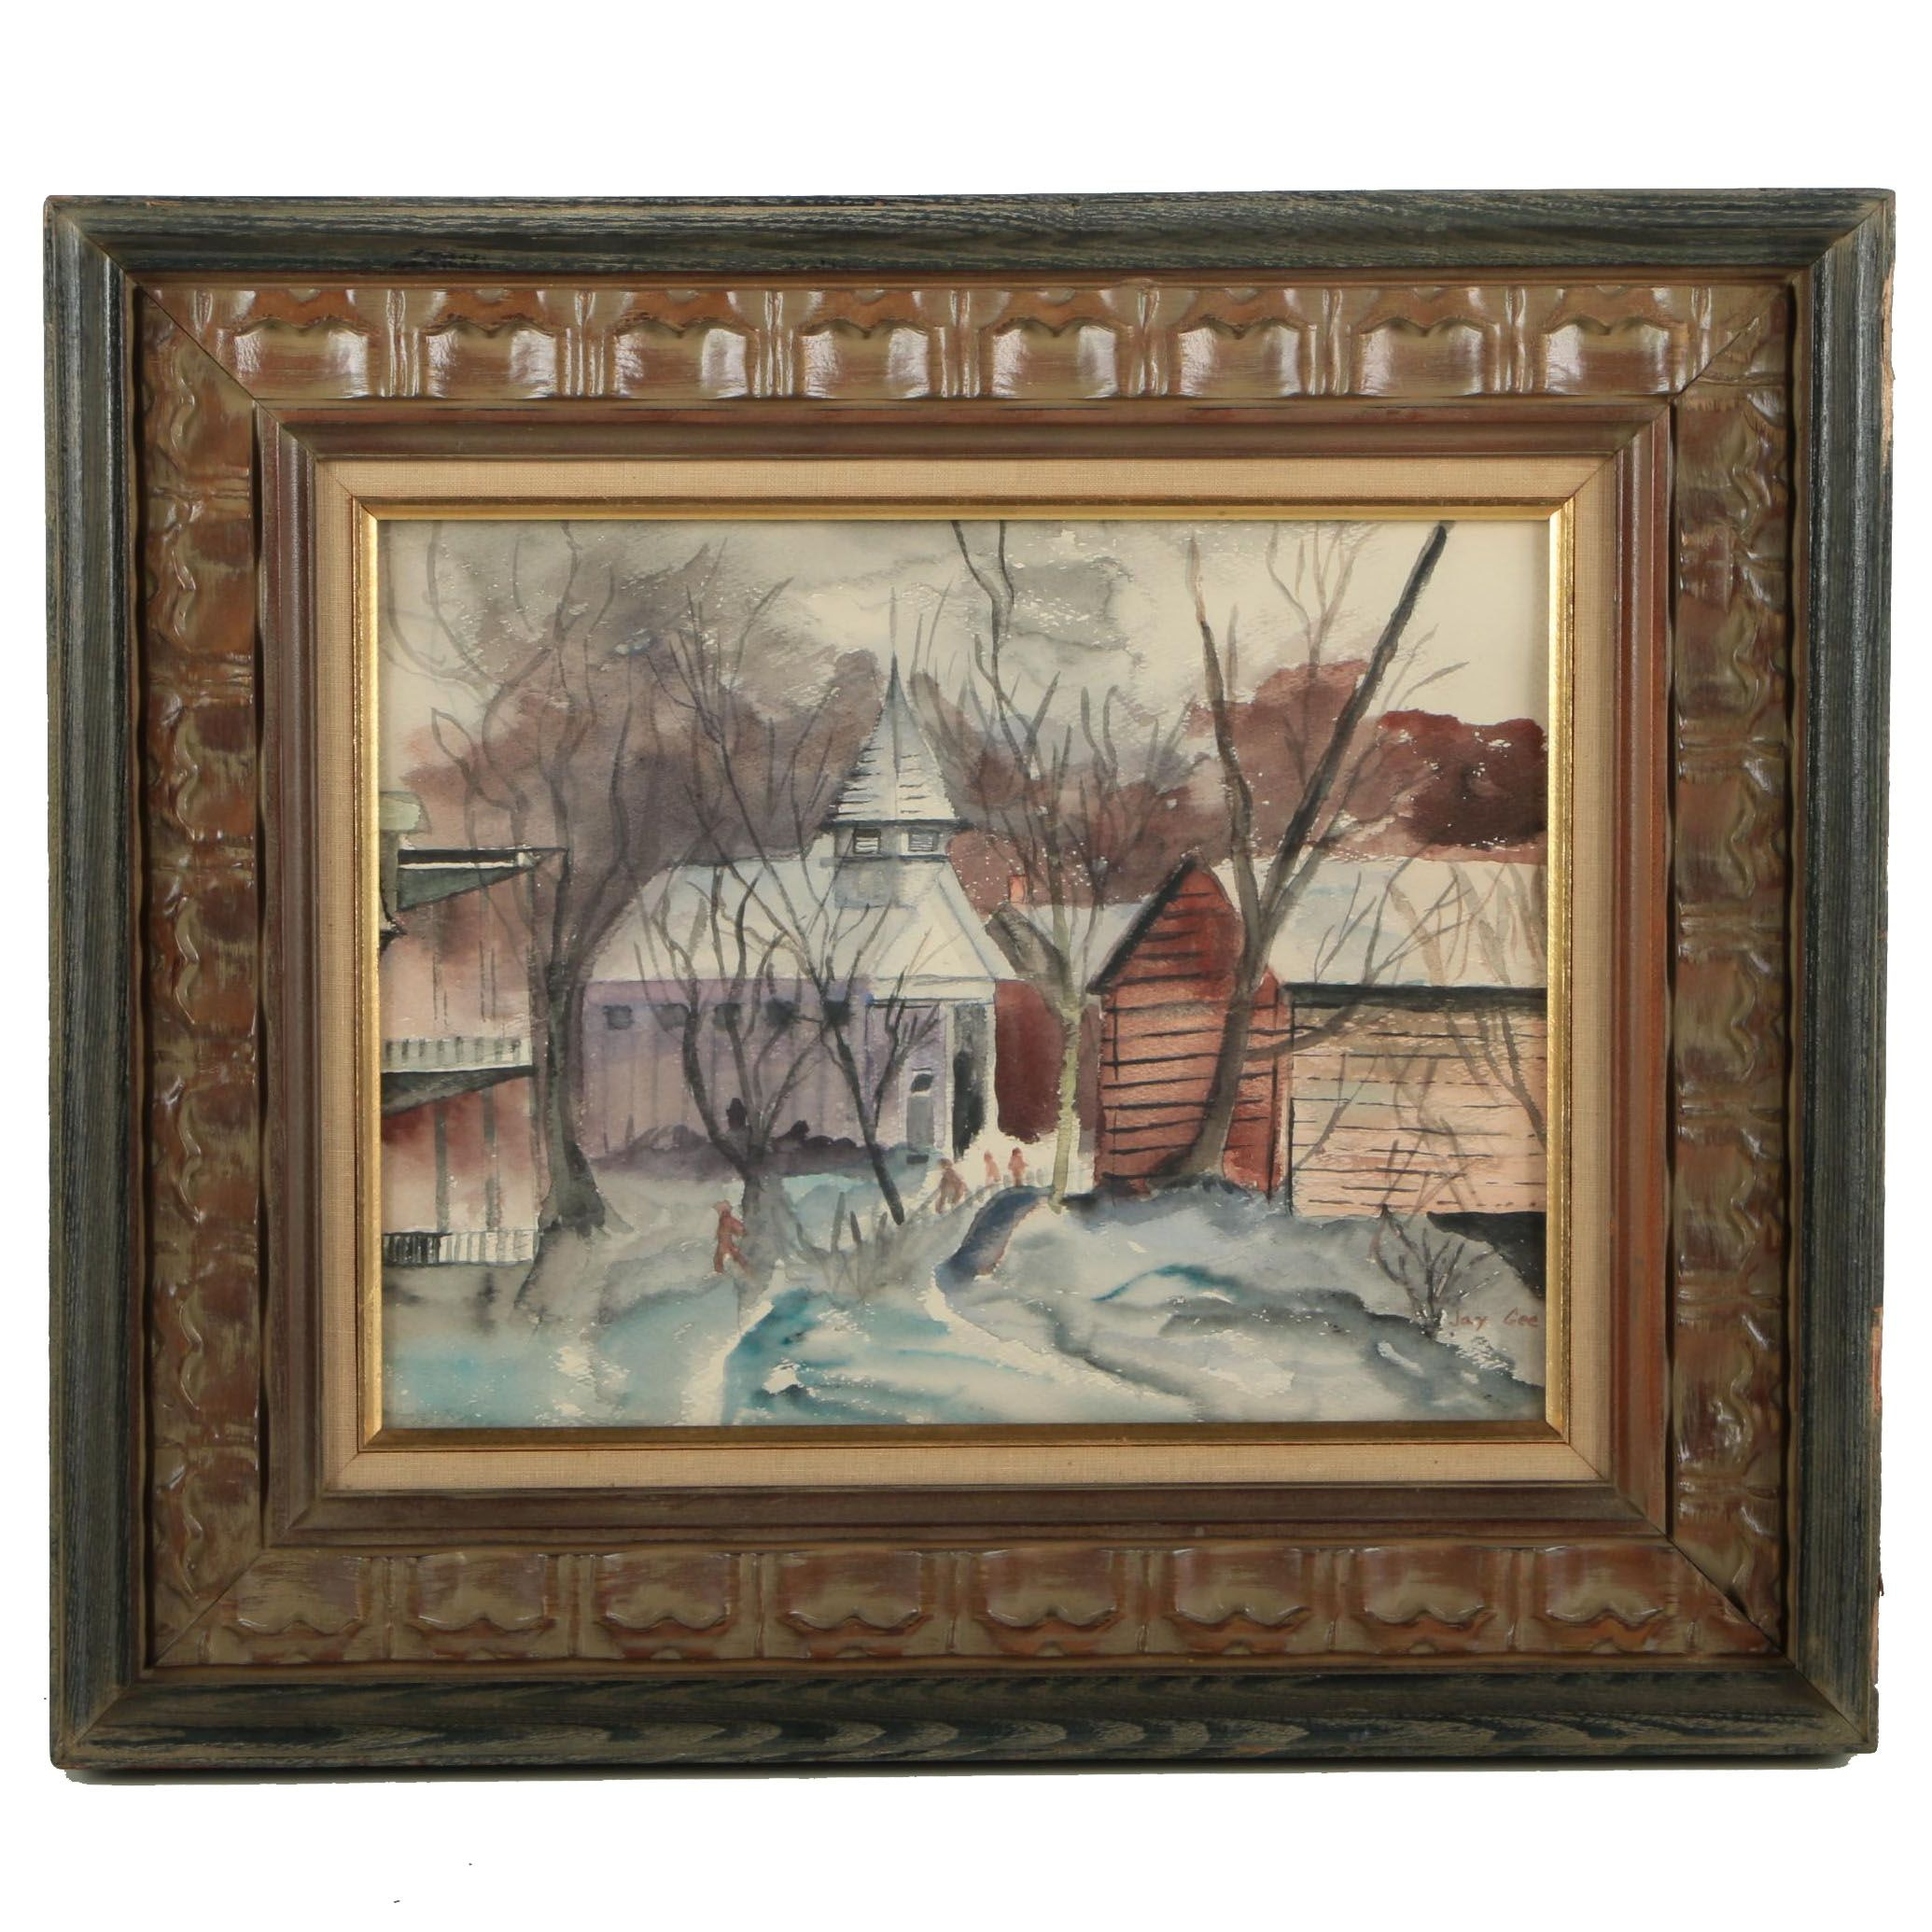 Jay Gee Watercolor Painting on Paper of a Winter Scene